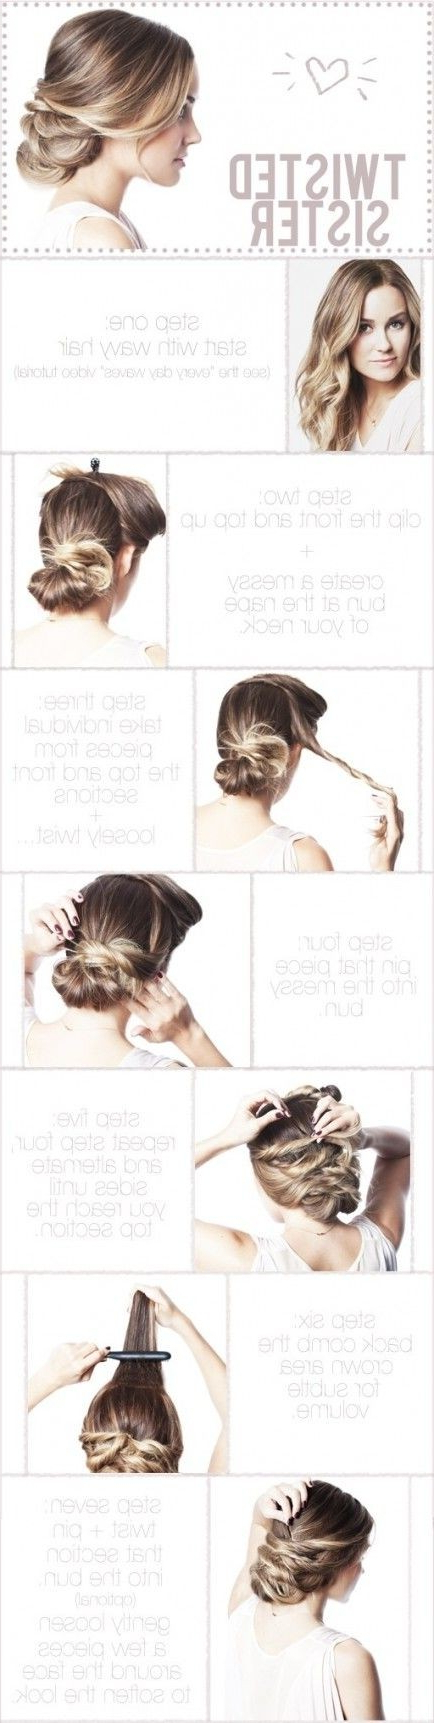 10 Super Easy Updo Hairstyles Tutorials – Popular Haircuts Intended For High Volume Donut Bun Updo Hairstyles (View 16 of 25)